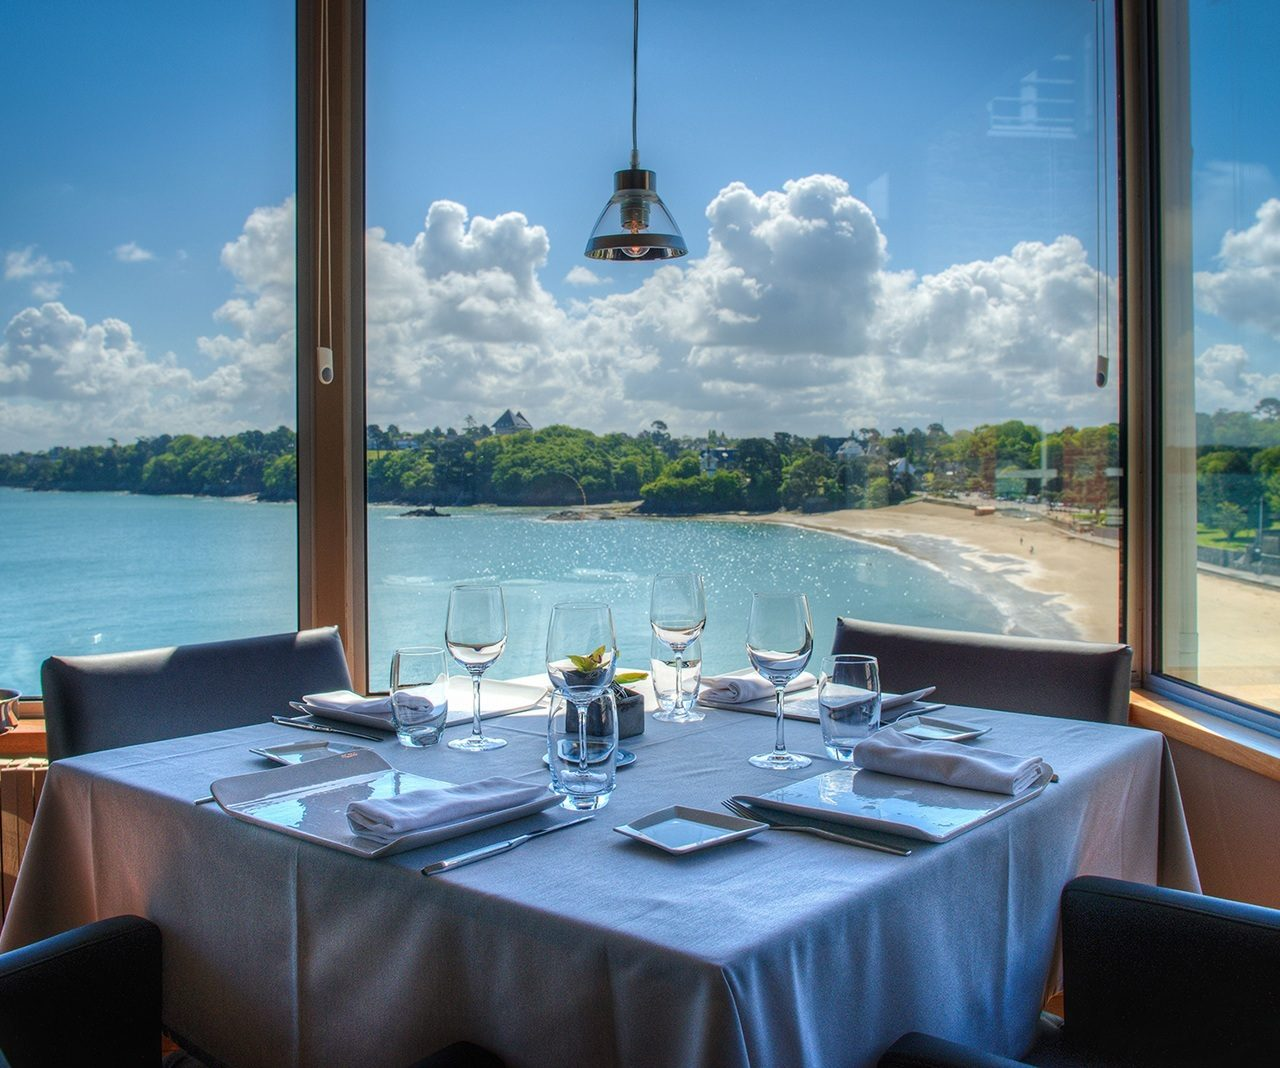 restaurant vue sur mer didier meril restaurant gastronomique dinard. Black Bedroom Furniture Sets. Home Design Ideas